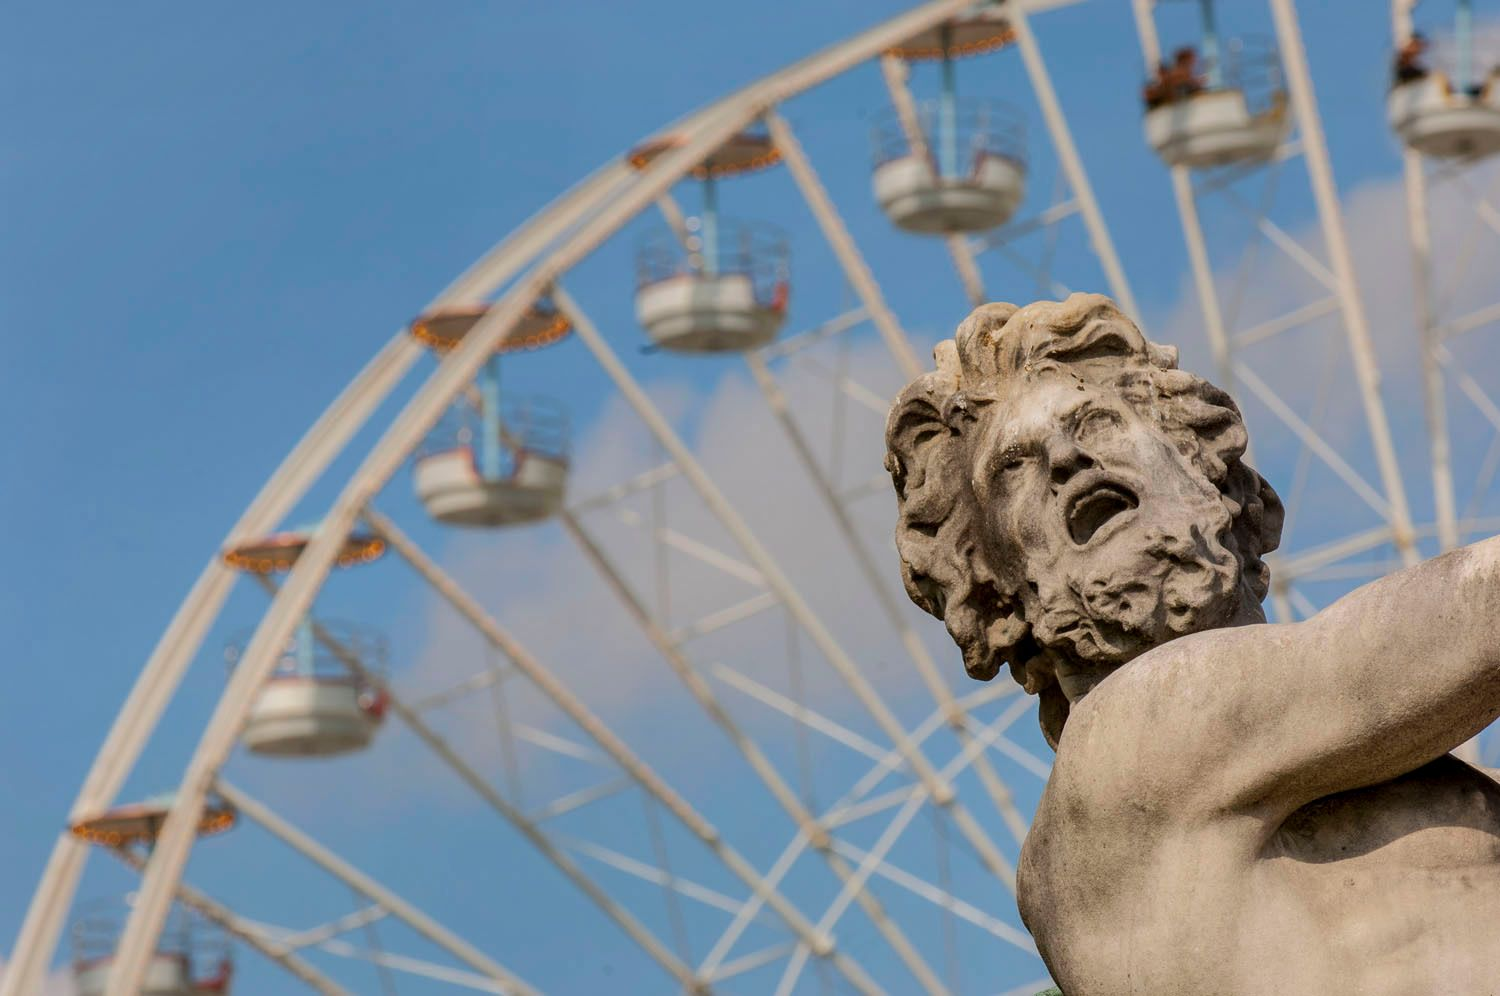 Statue in front of Ferris Wheel in Paris, France